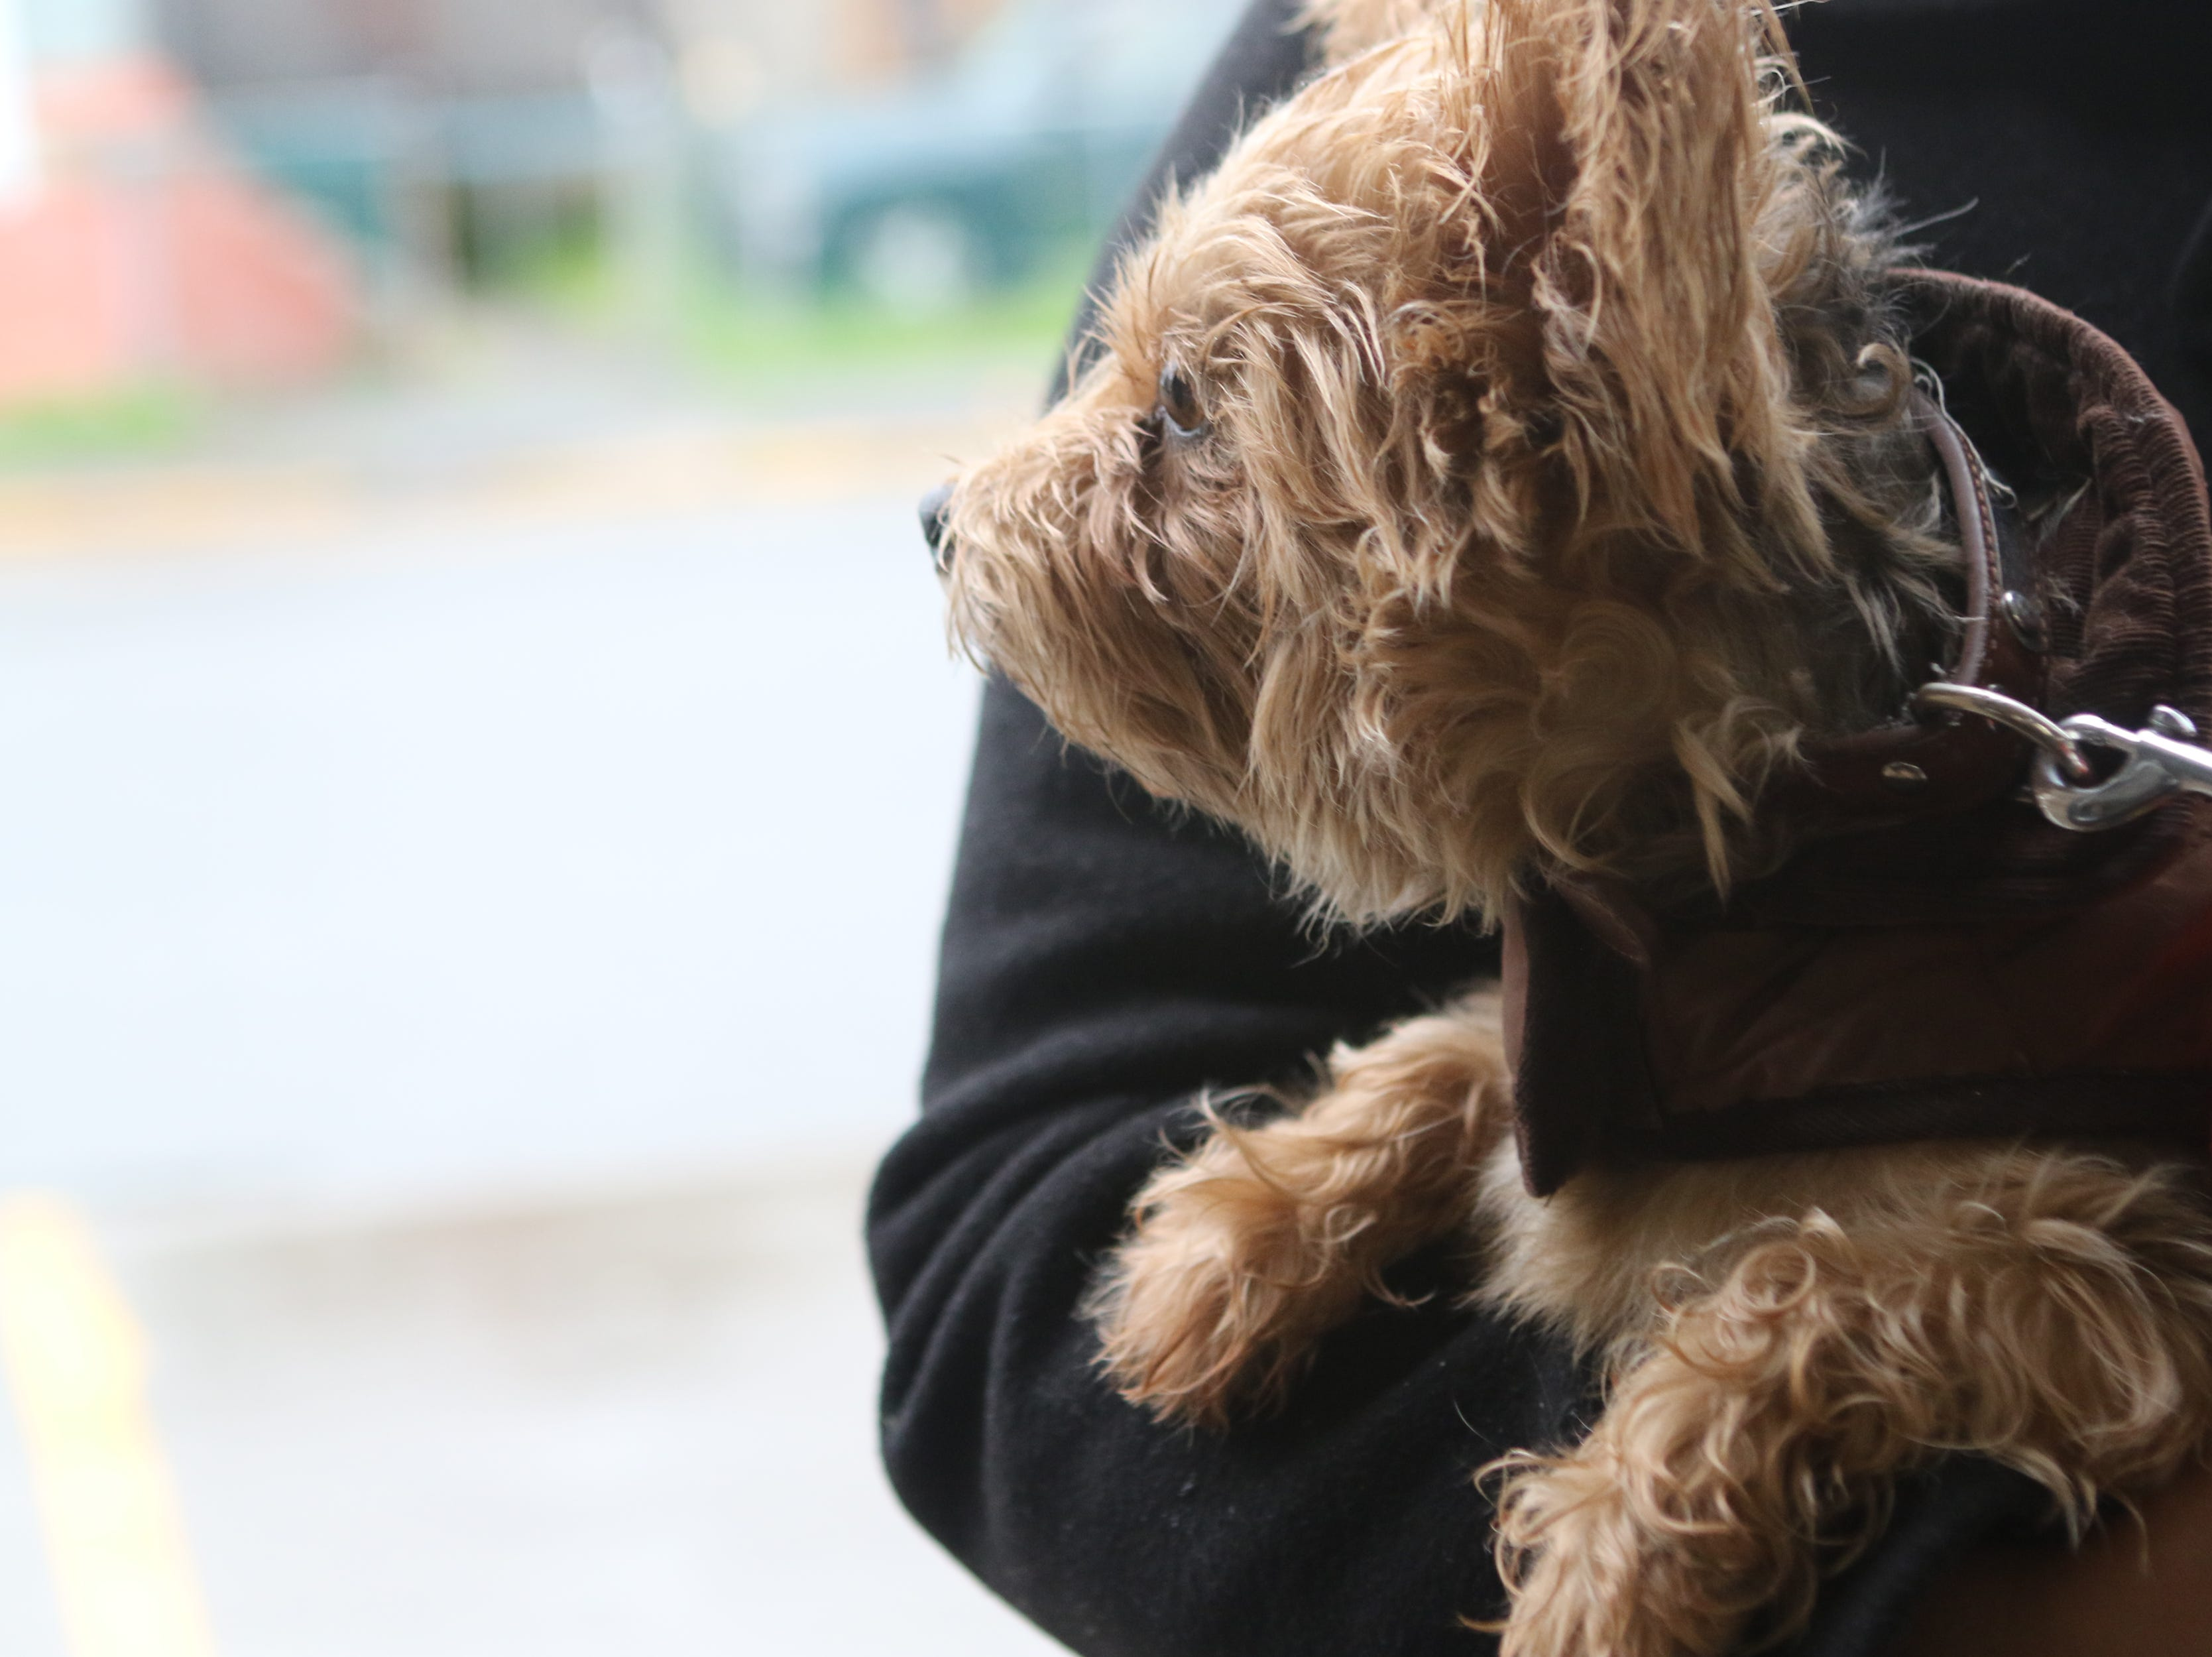 Approximately 1400 cats and dogs, including this one, are expected to get vaccinated for rabies at the 44th annual free Paterson clinic that runs through Sunday. Tuesday, May 14, 2019